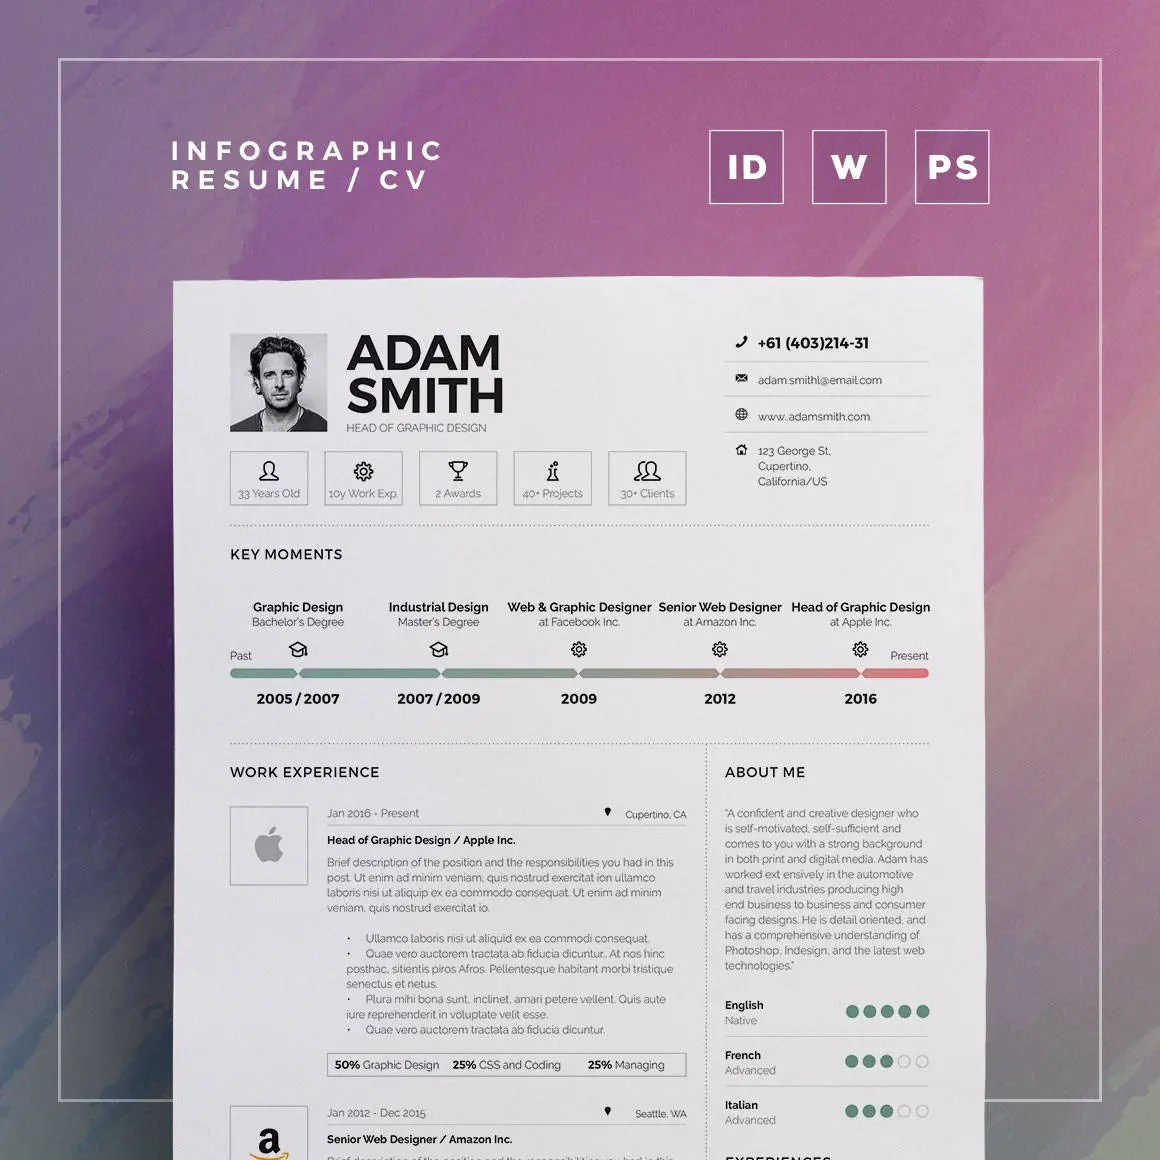 Infographic Resume/Cv Volume 9 2 Pages Word and Indesign Etsy